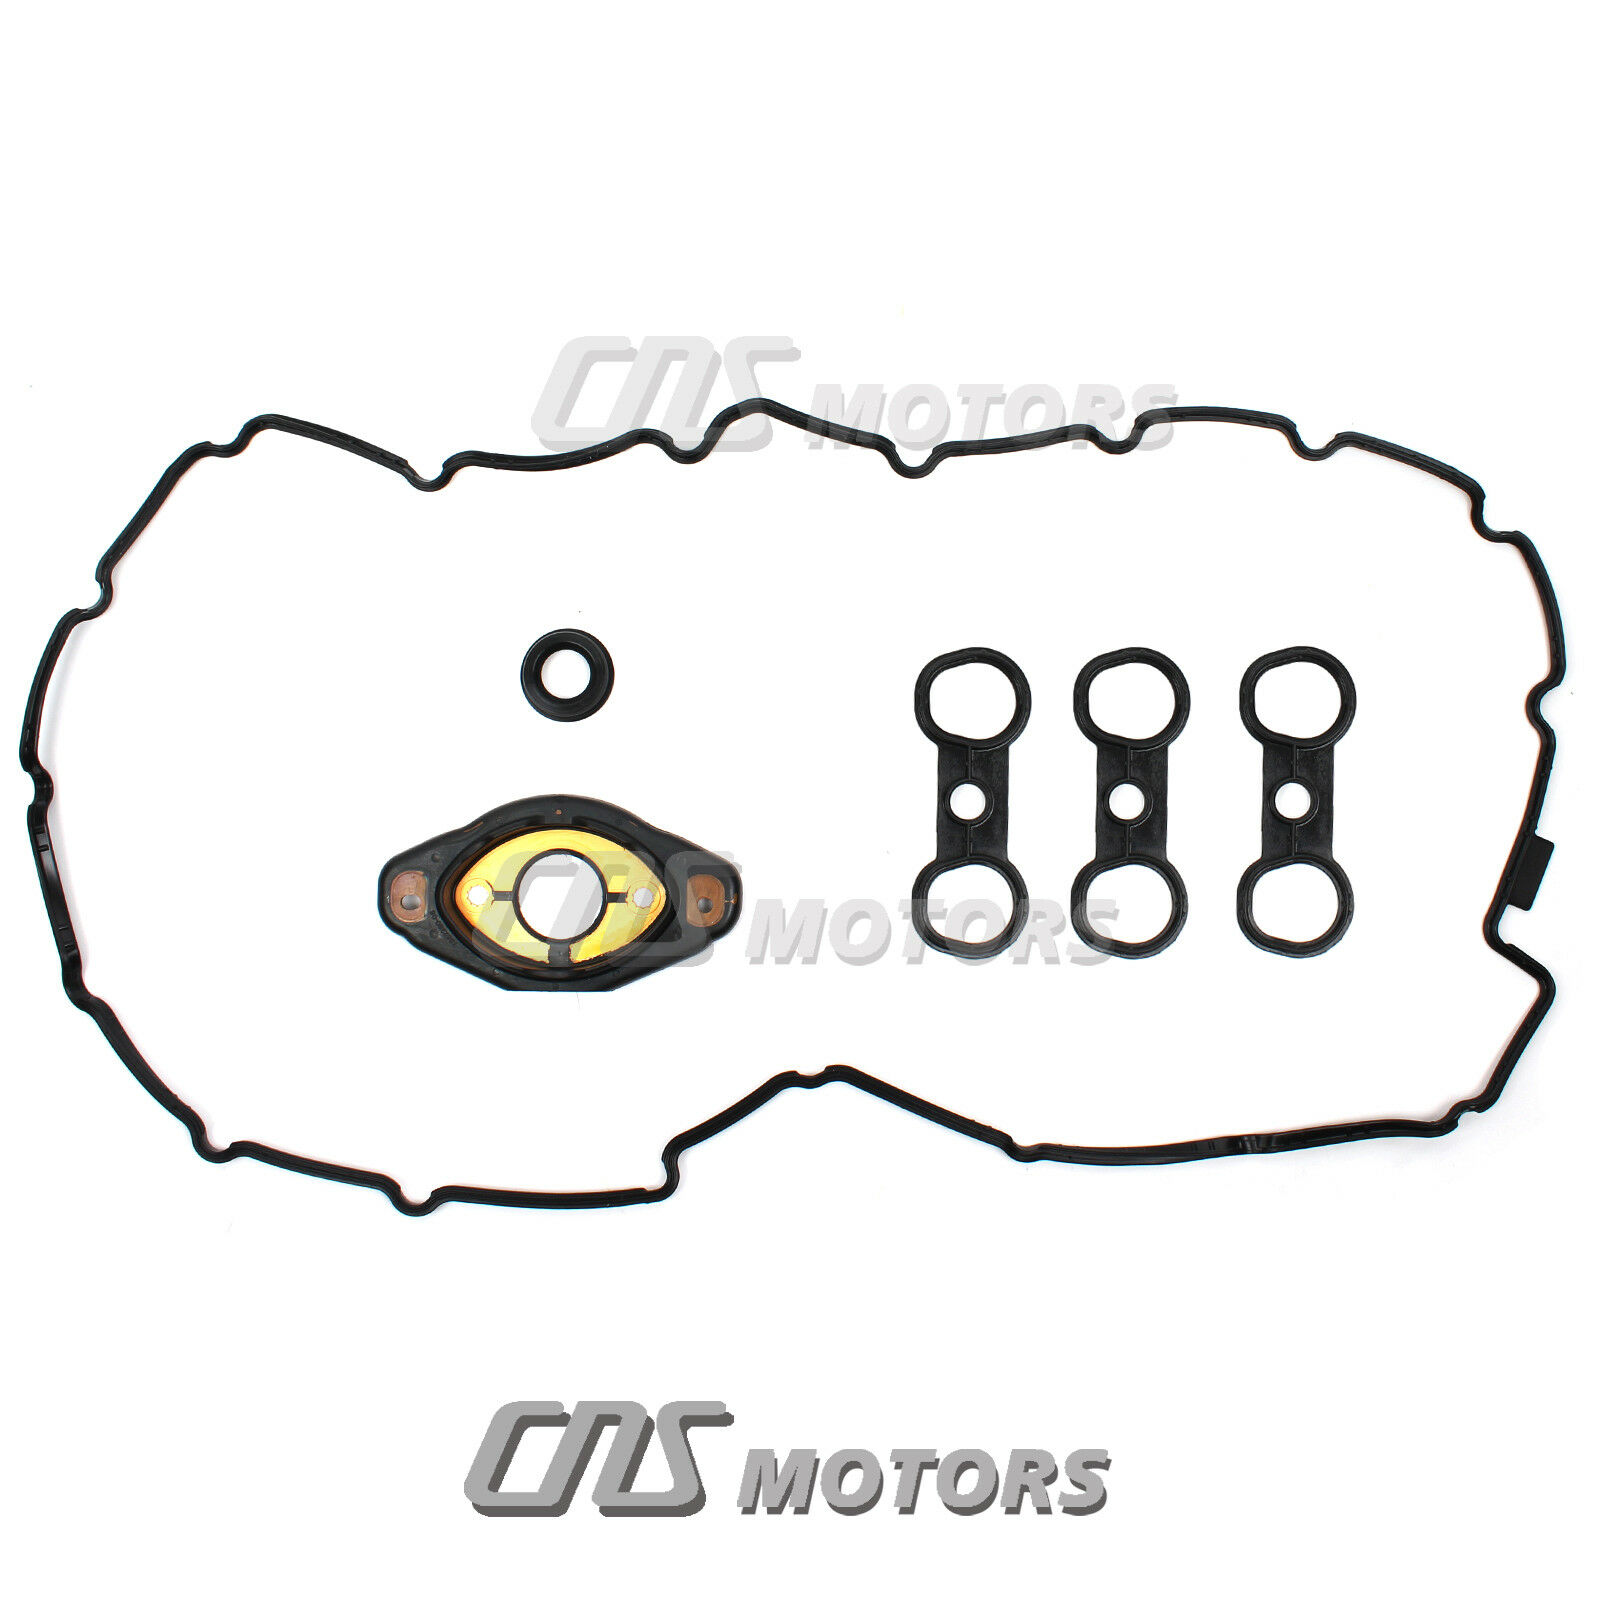 Car & Truck Cylinder Head & Valve Cover Gaskets Fits 06-13